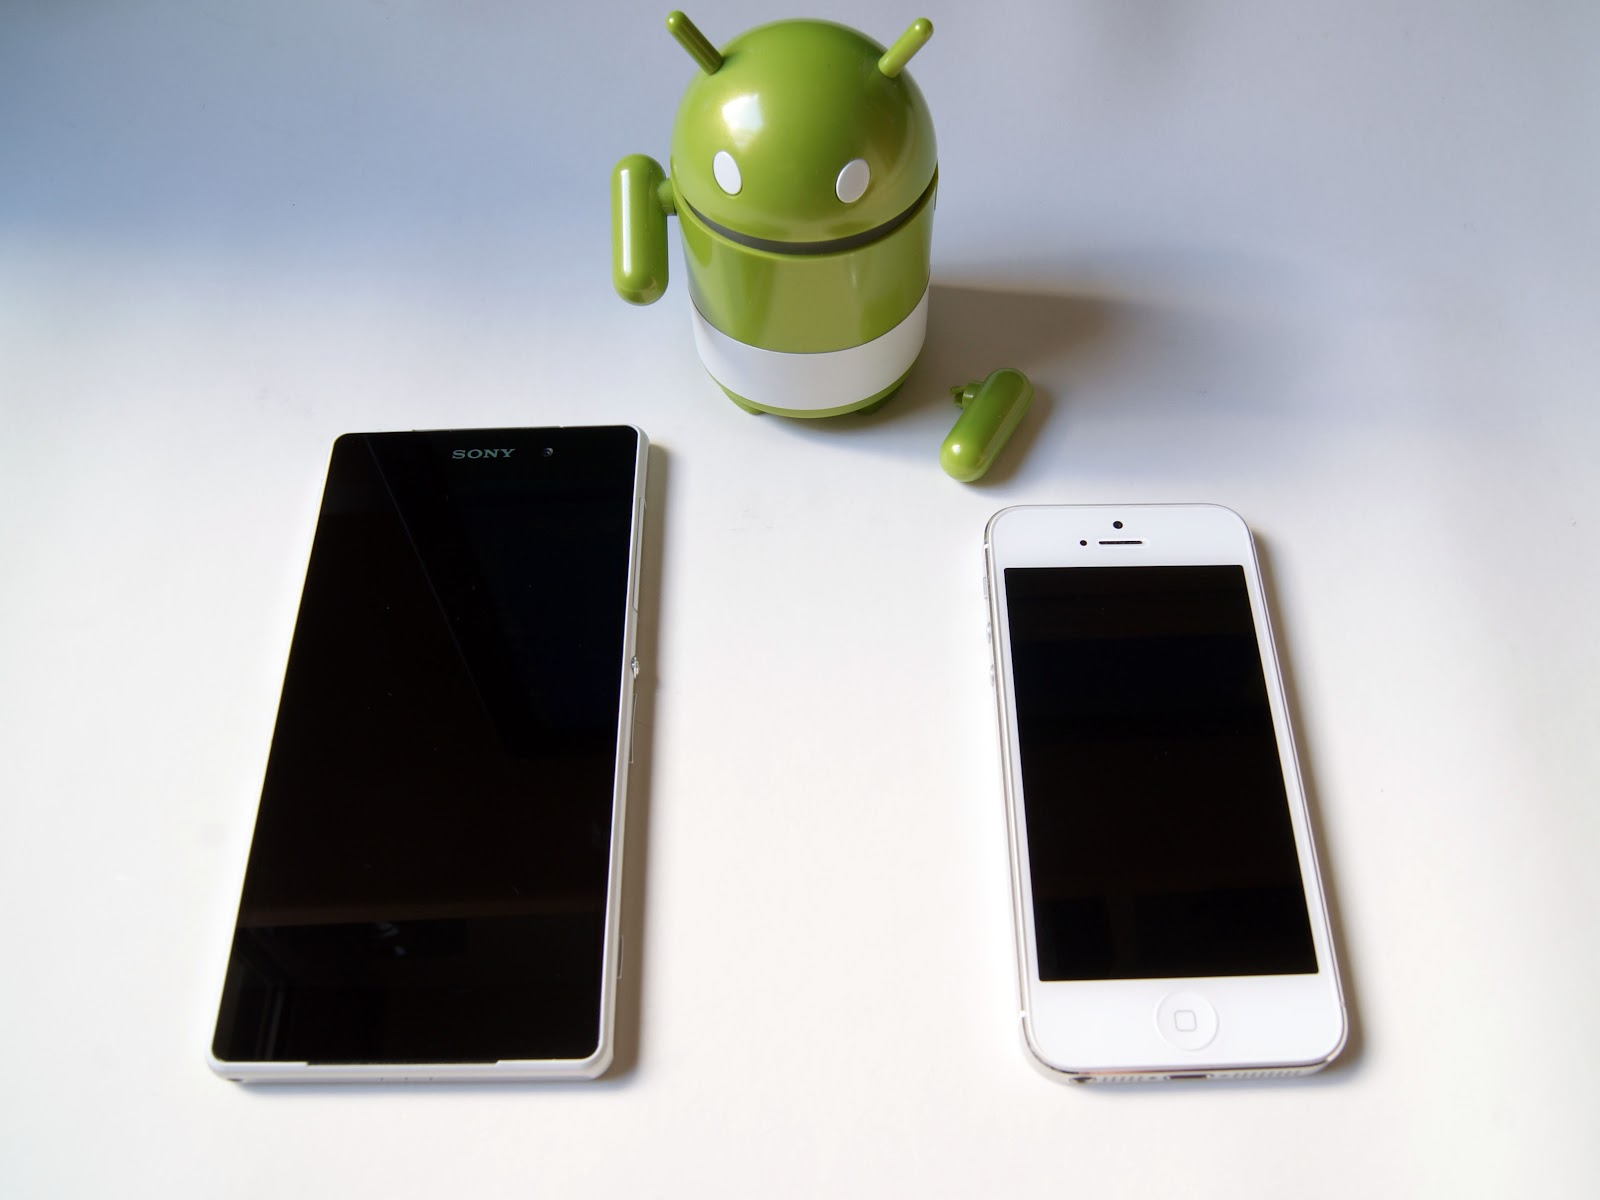 Sony Xperia Z2 tamaño comparado con iPhone 5